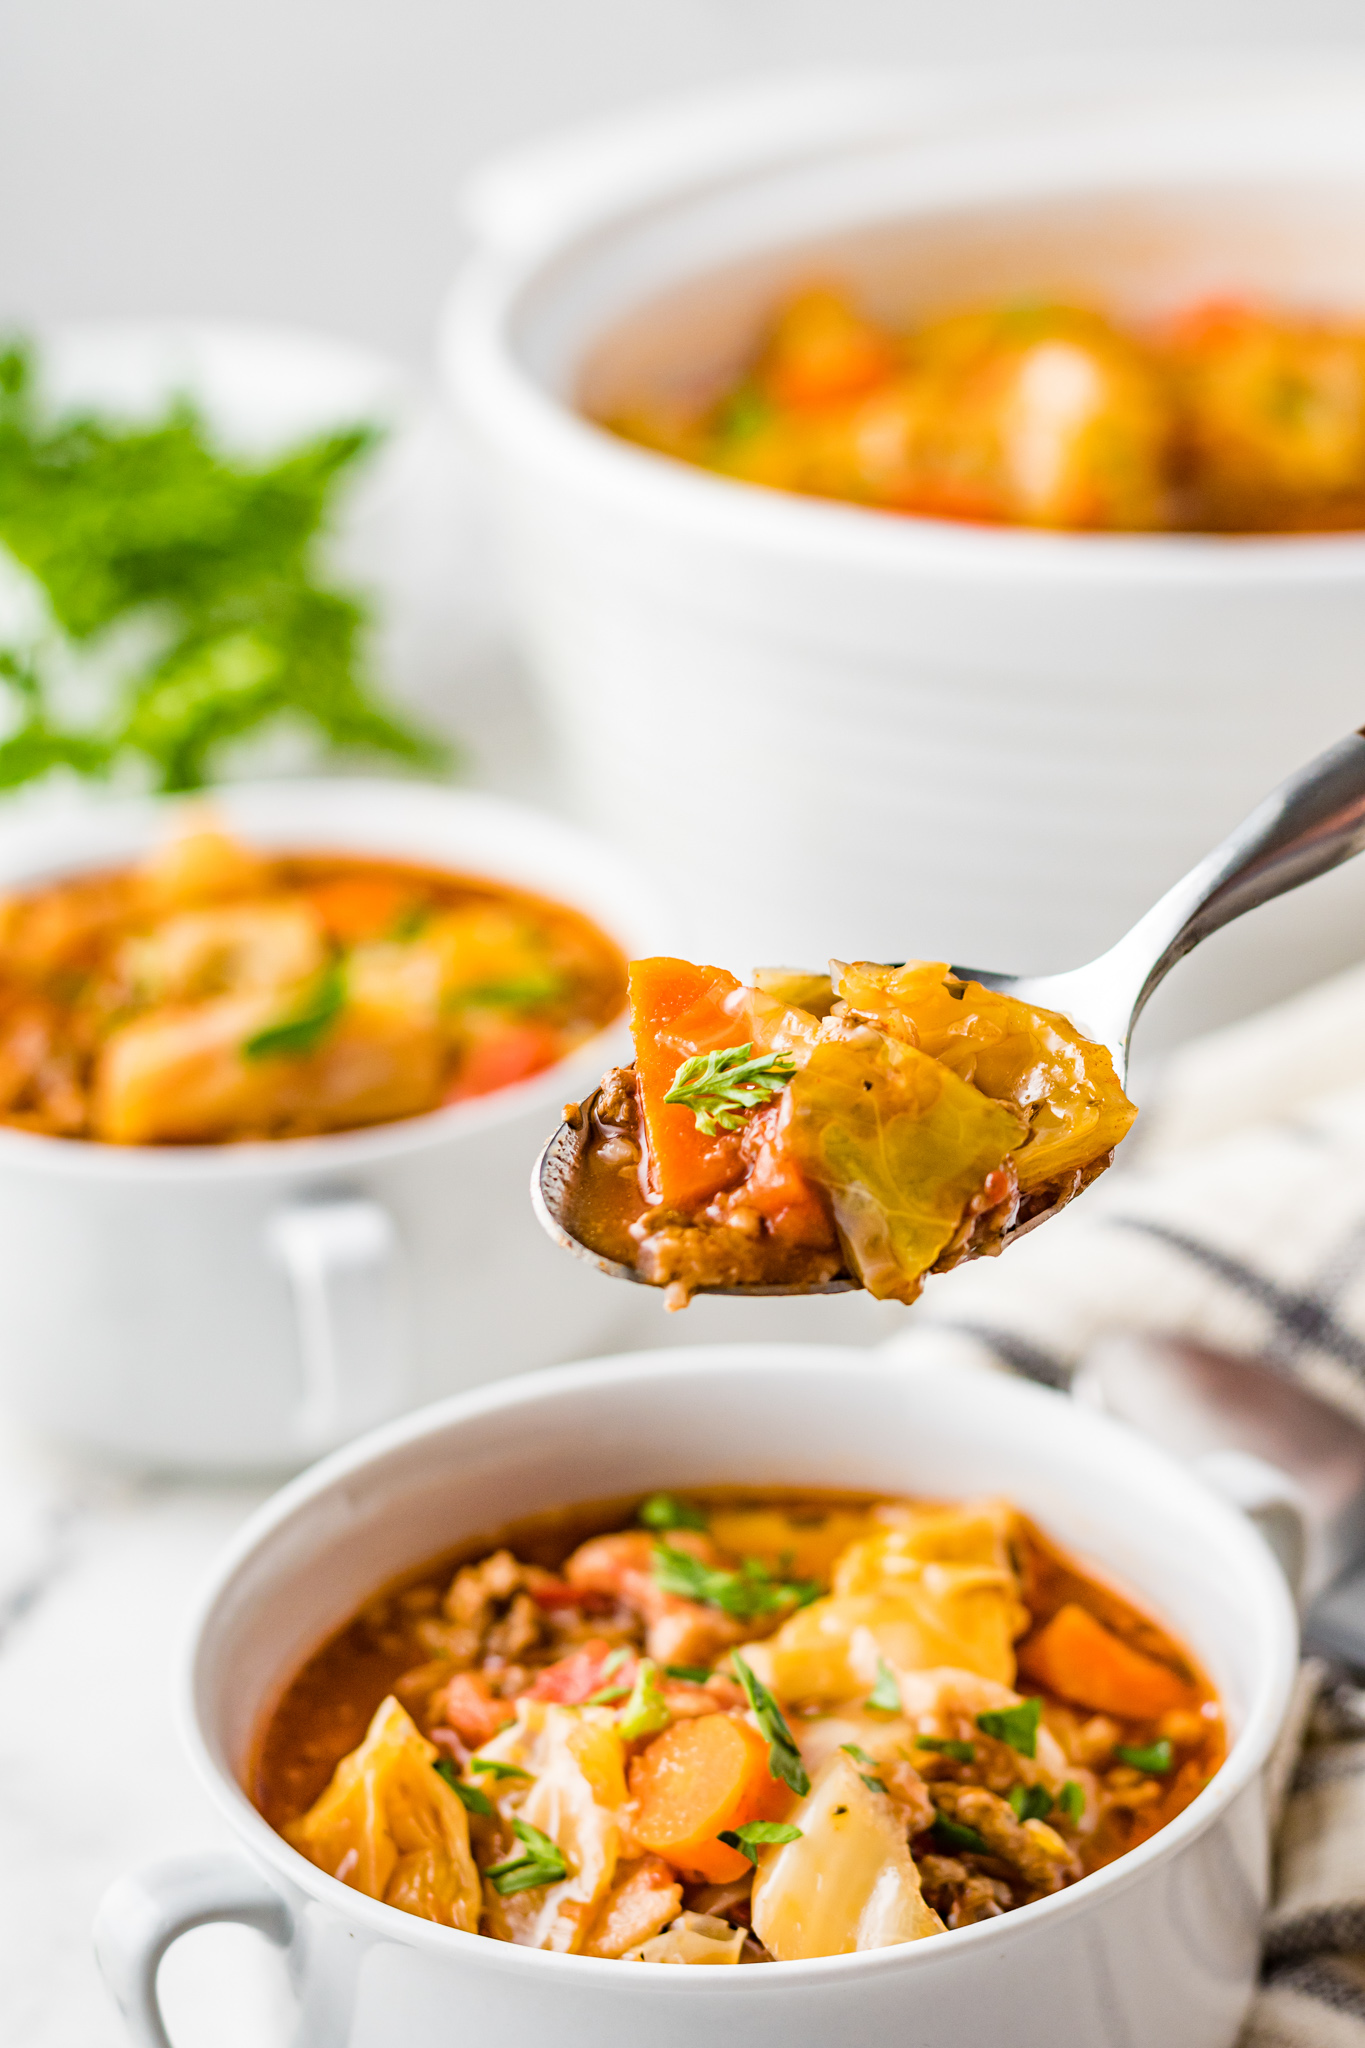 Cabbage Roll Soup with spoon.